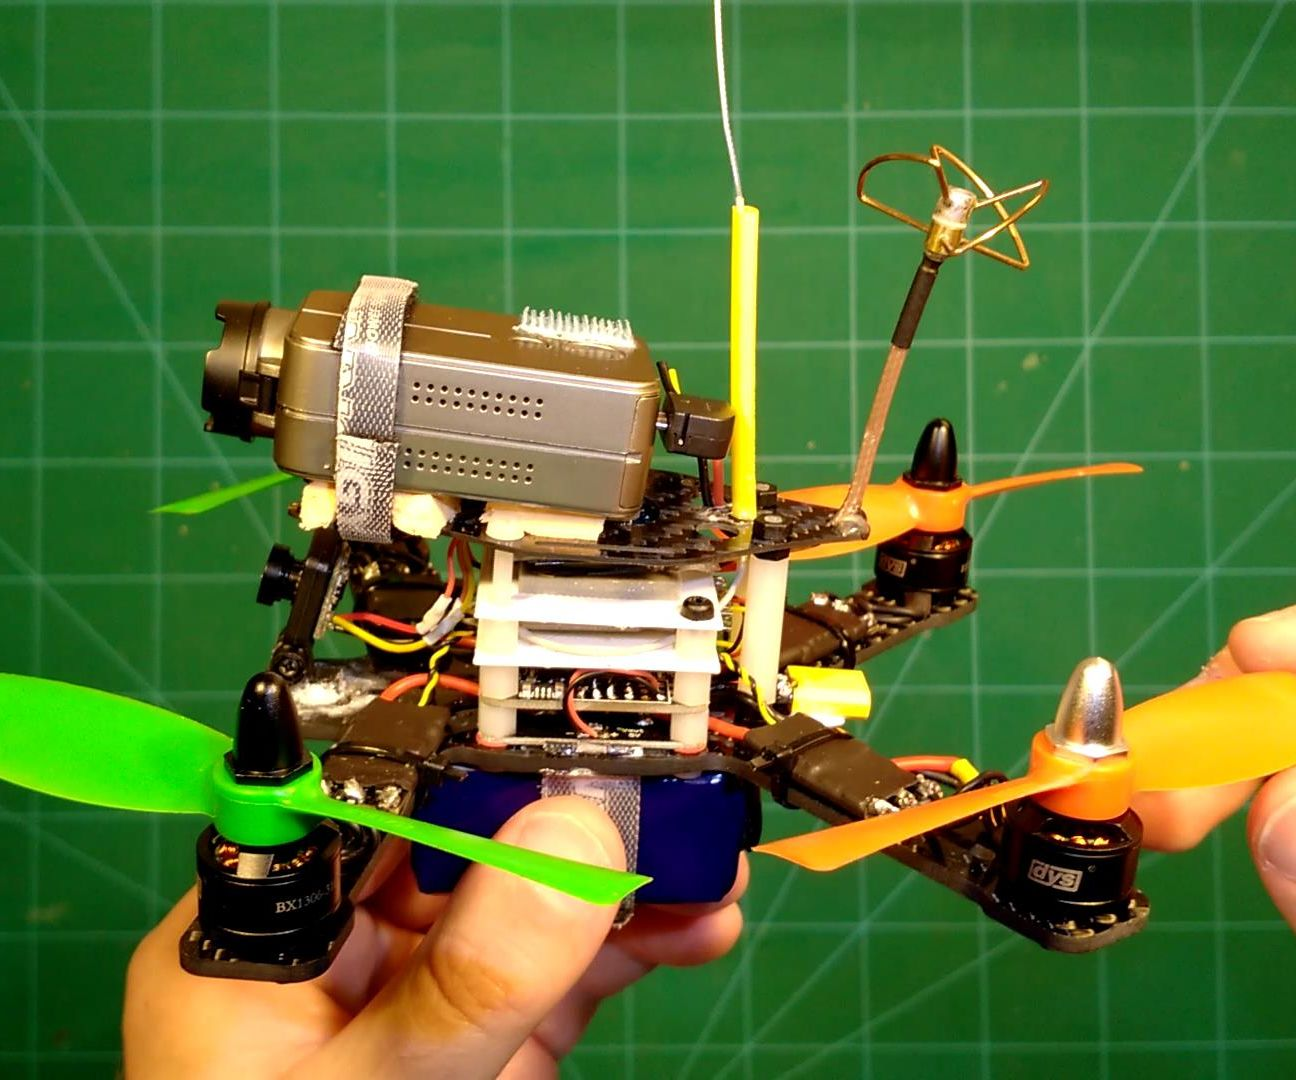 Sub 250g FPV Quadcopter with over 11 minutes Flight Time